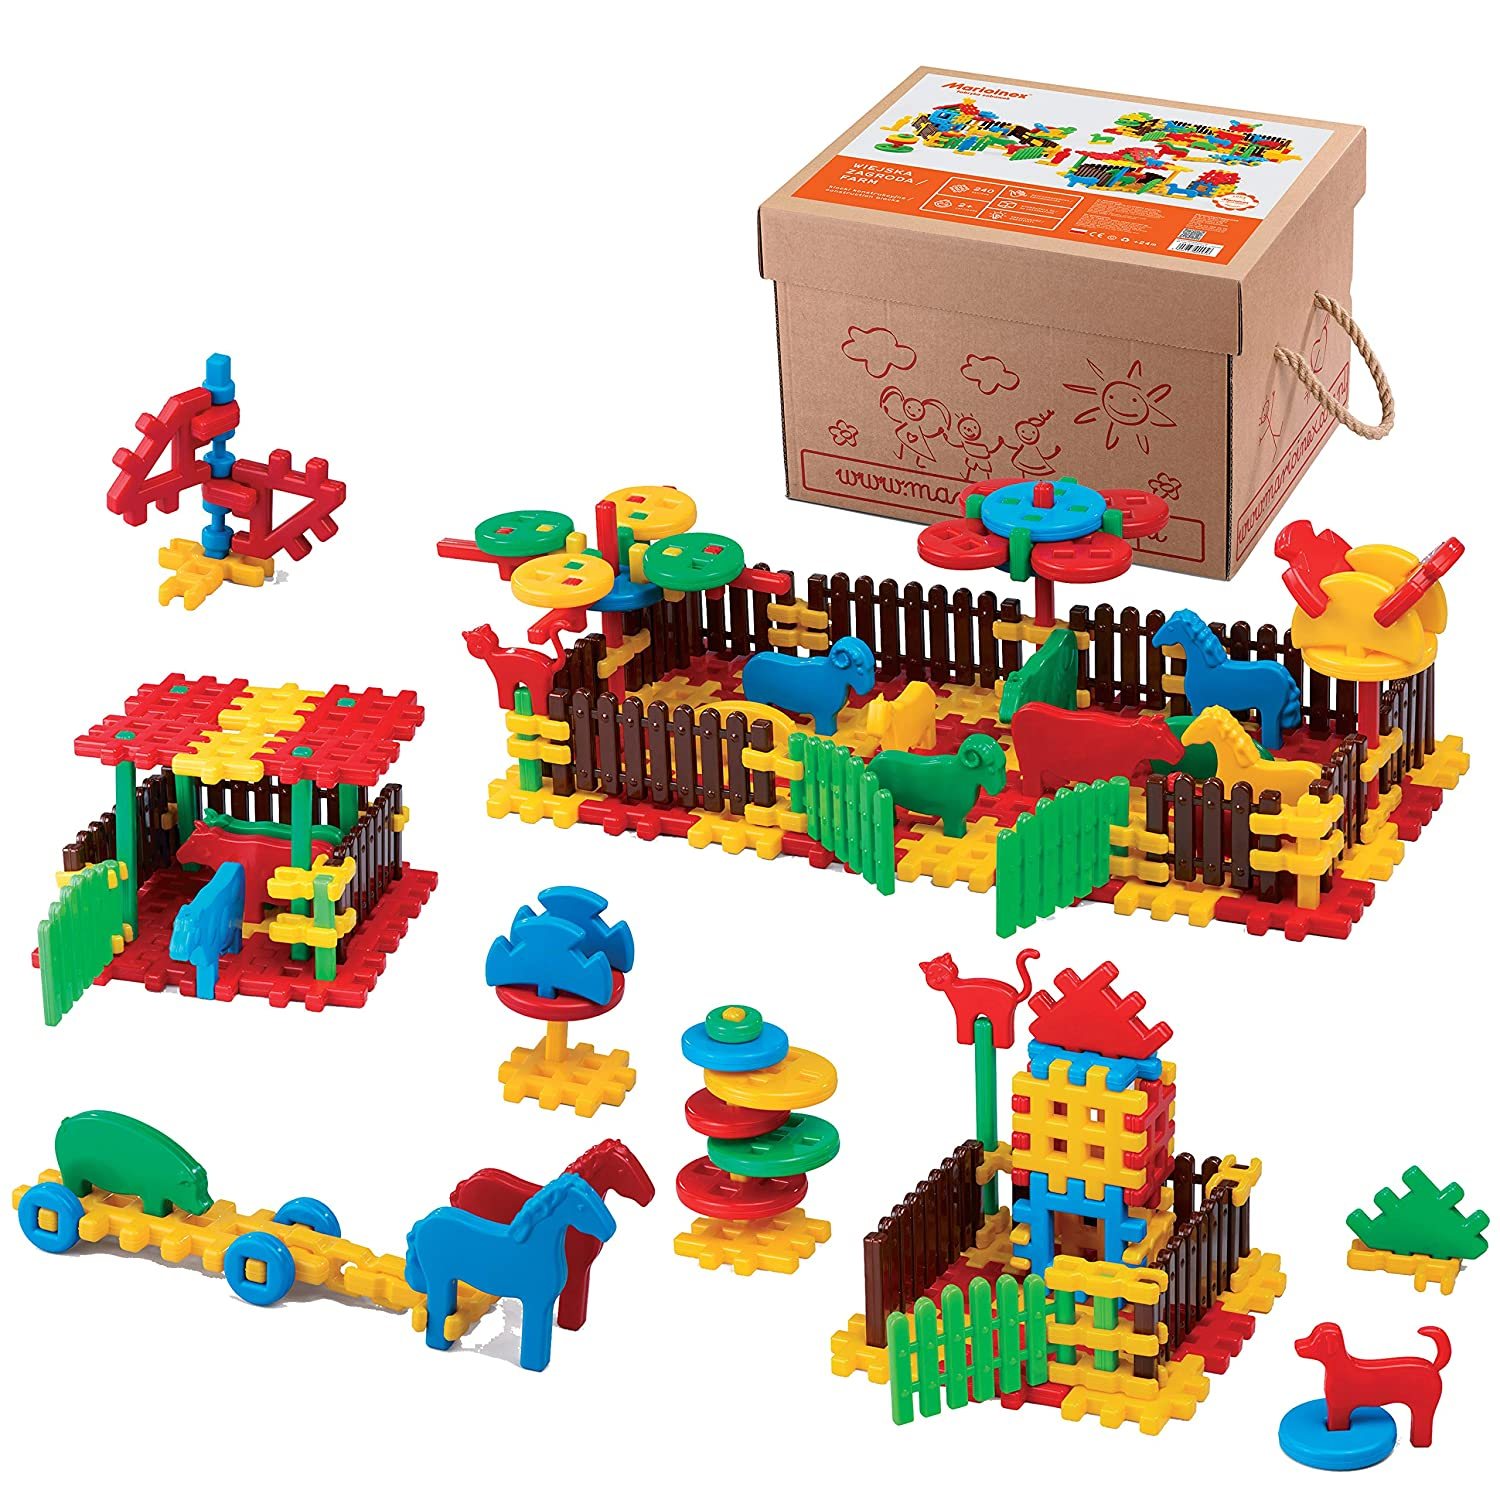 ECR4Kids Farm Waffle BlocksConstruction Set | 240 Piece Value Pack | Interlocking Building Blocks with Animal Figures and Learning Guide | Creative STEM Sensory Toy for Kids, Multicolor (240 Pieces)